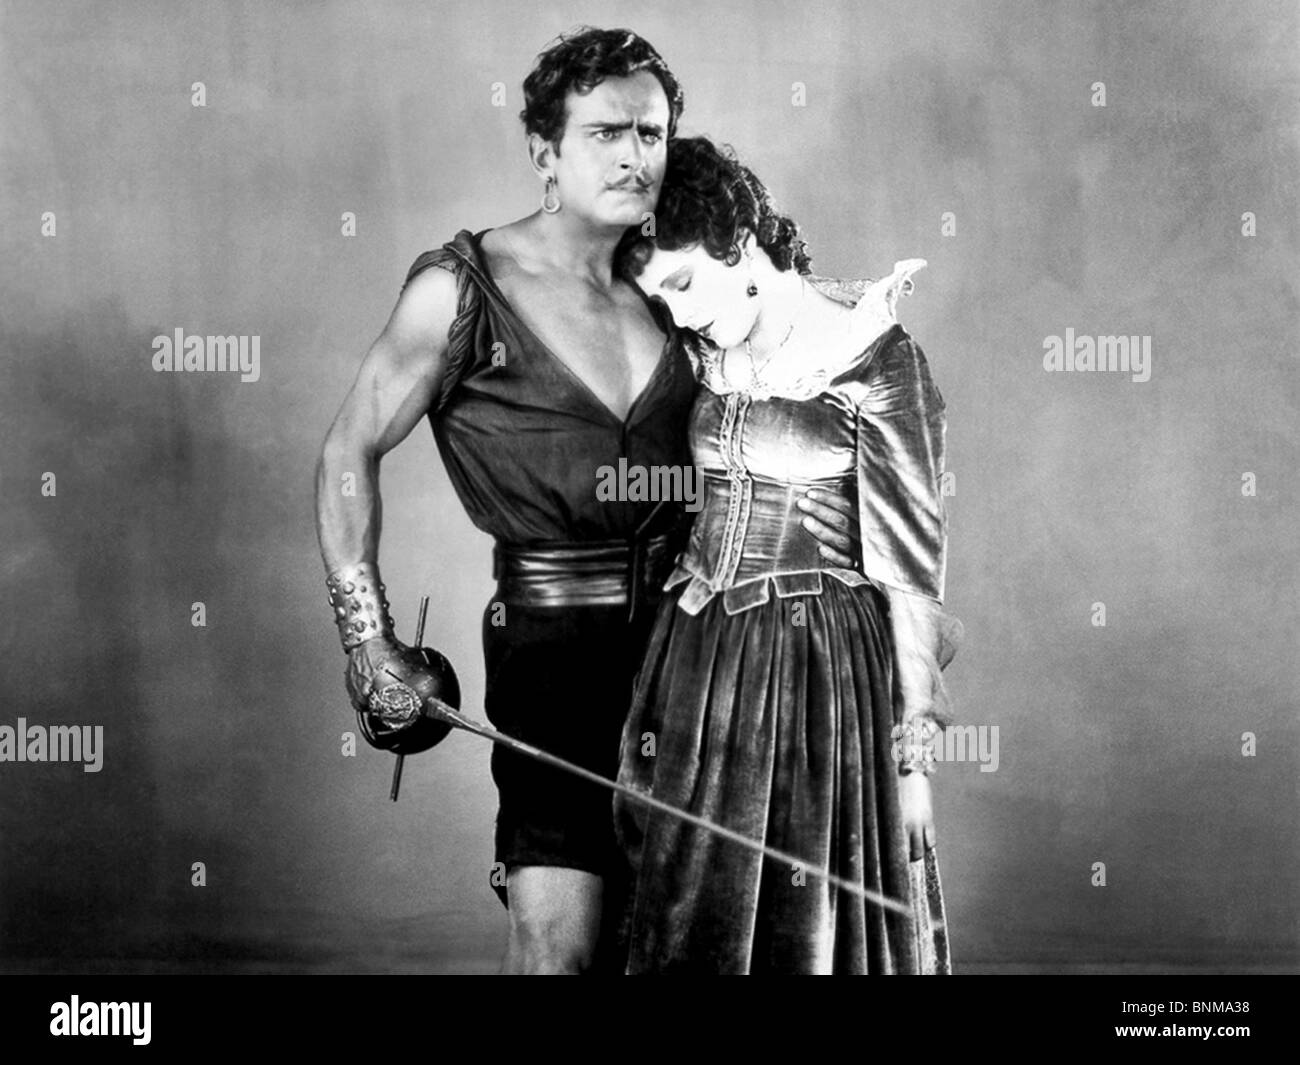 THE BLACK PIRATE (1926) DOUGLAS FAIRBANKS, BILLIE DOVE ALBERT PARKER (DIR) 002 MOVIESTORE COLLECTION LTD - Stock Image